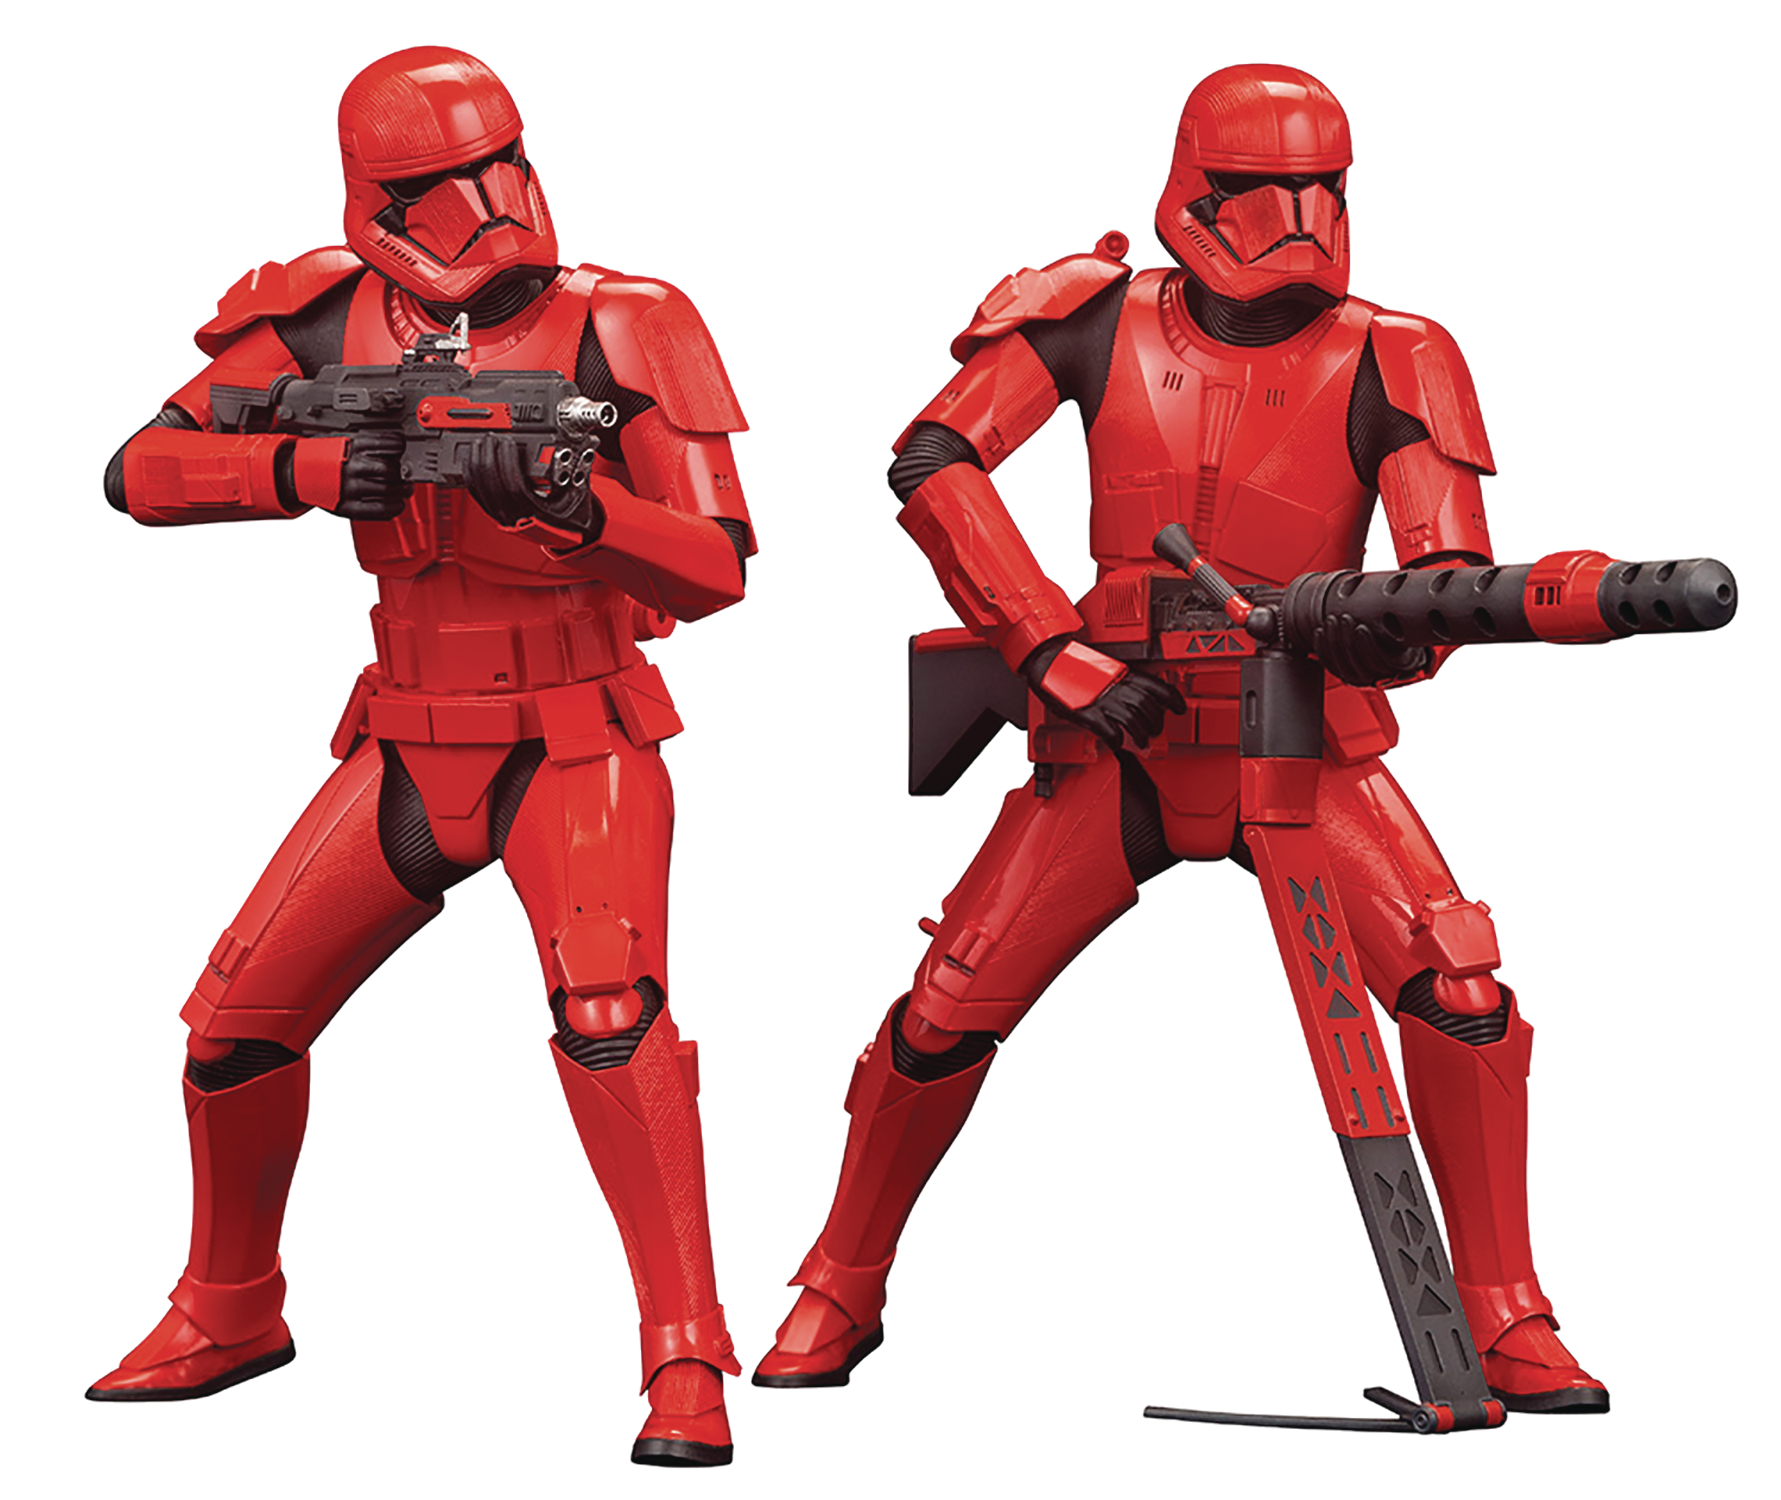 STAR WARS SITH TROOPER ARTFX+ 2PK